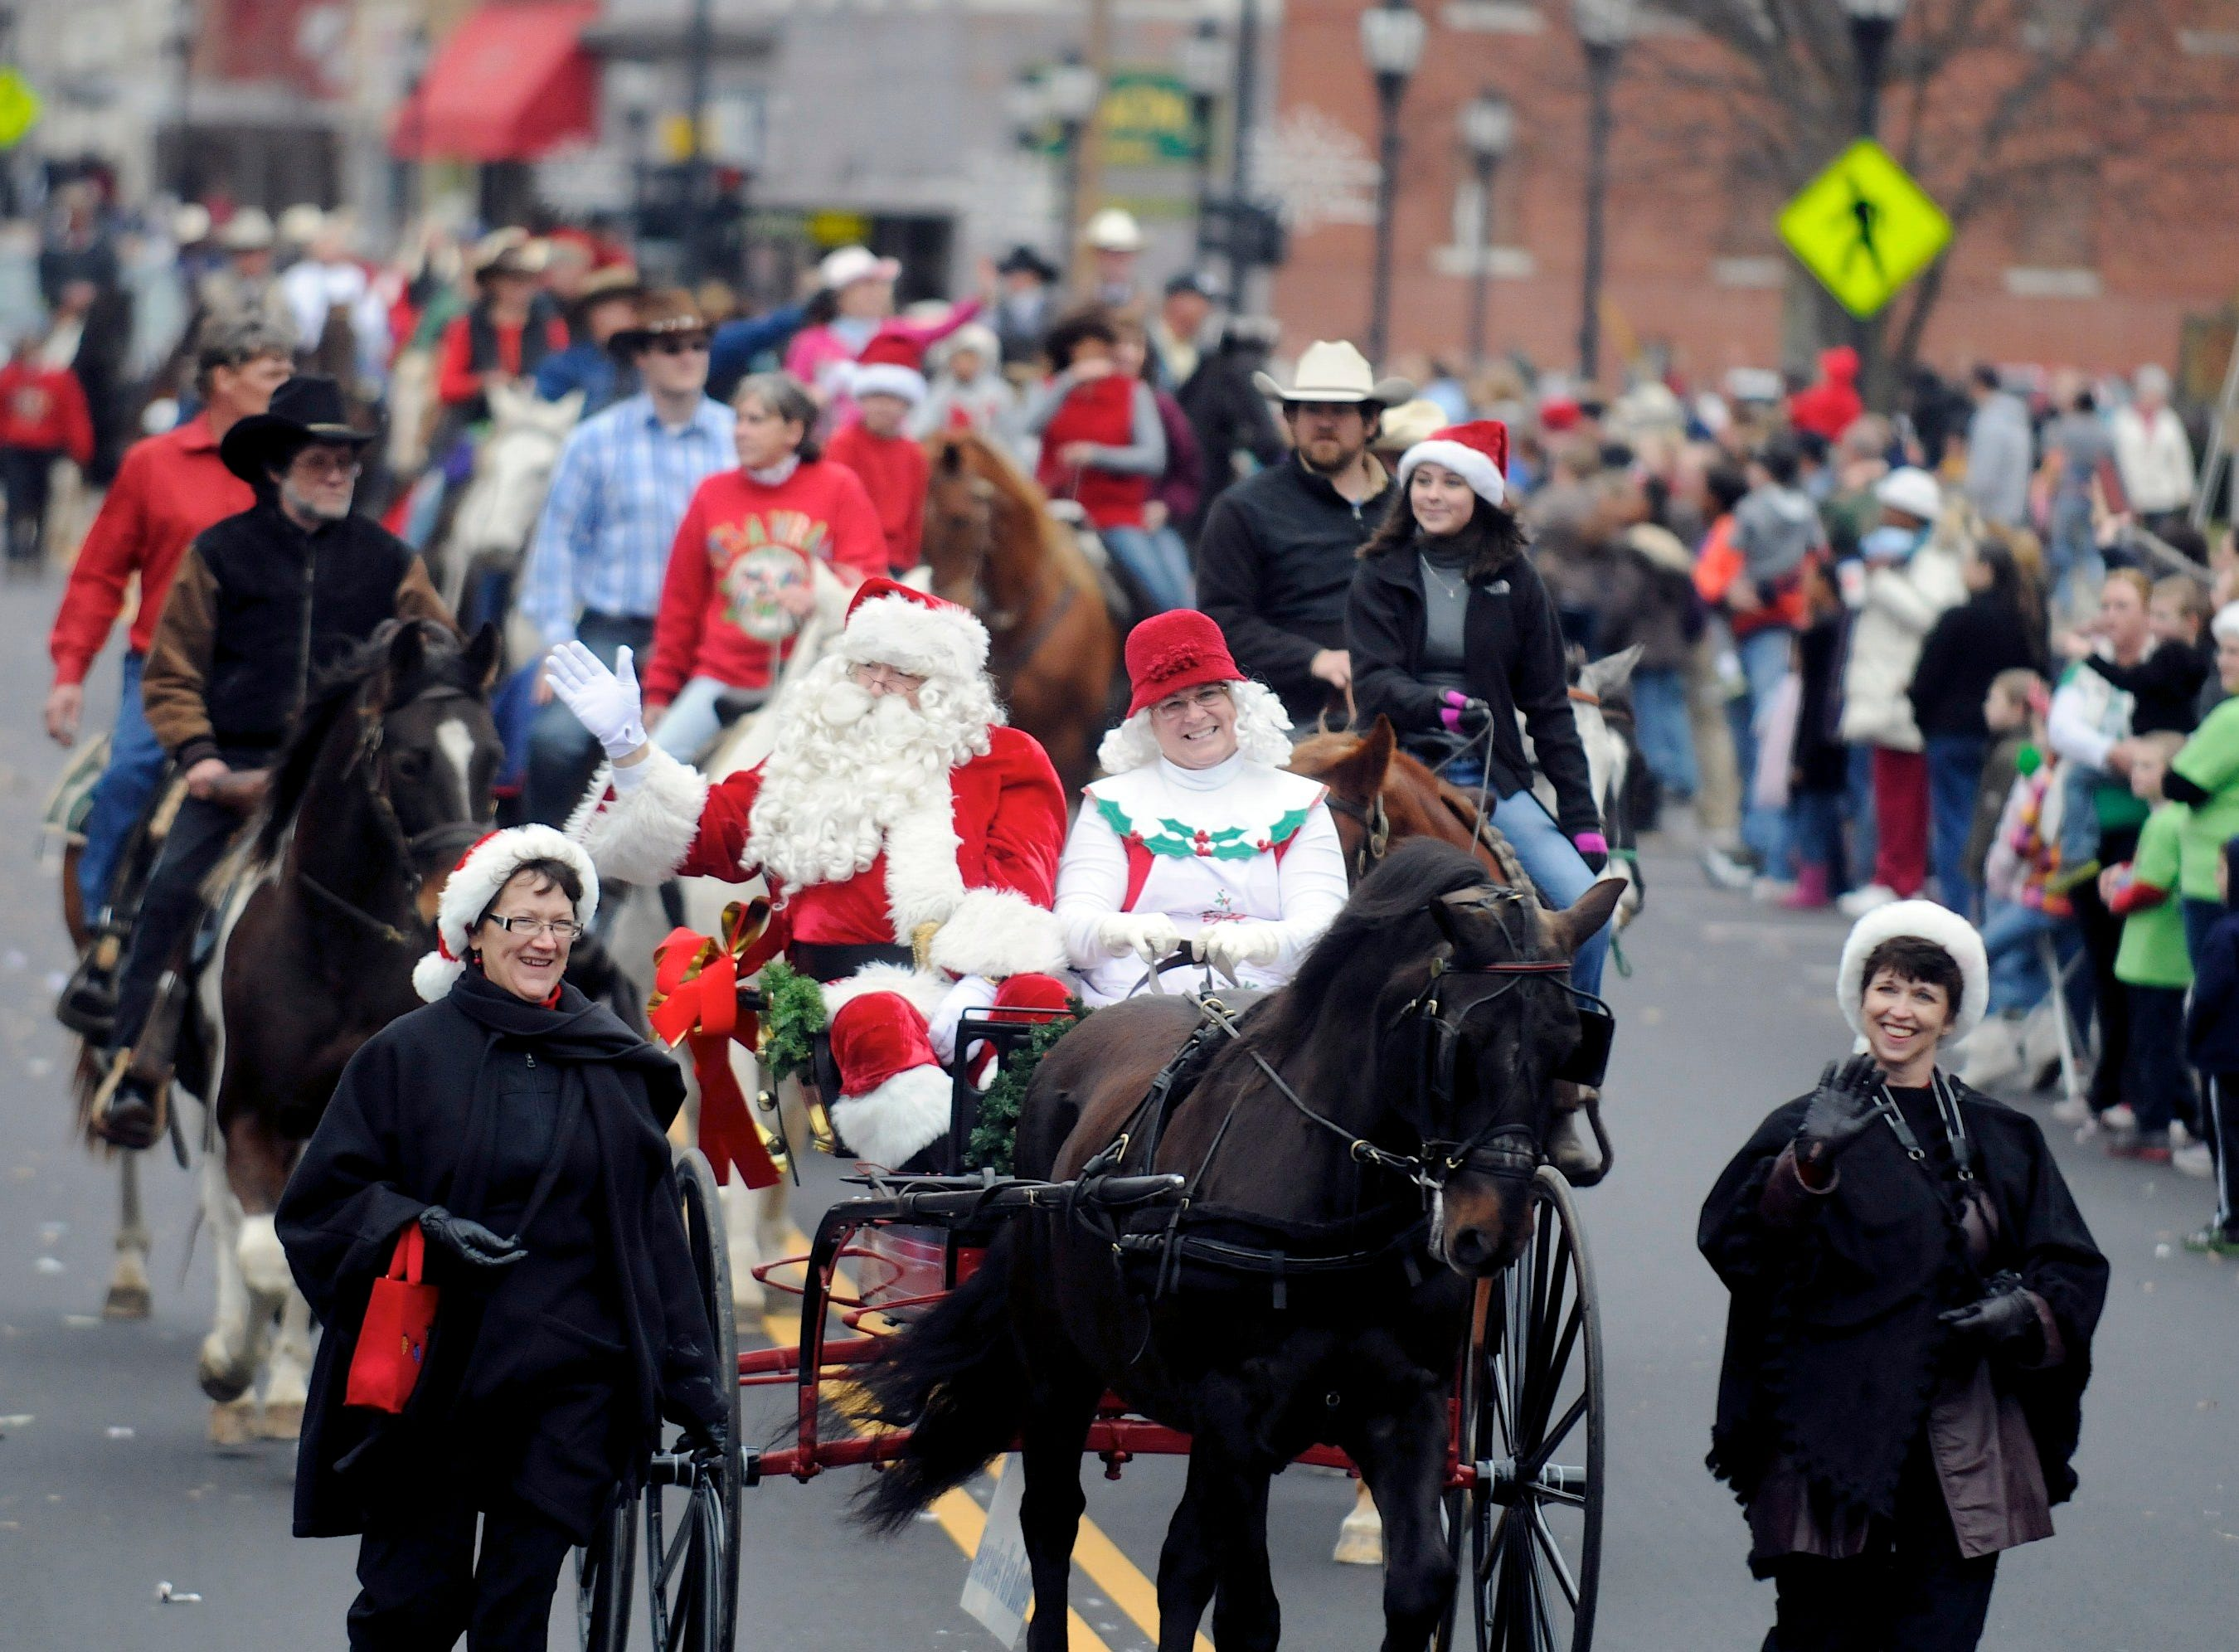 Darrin Phegley / The Gleaner